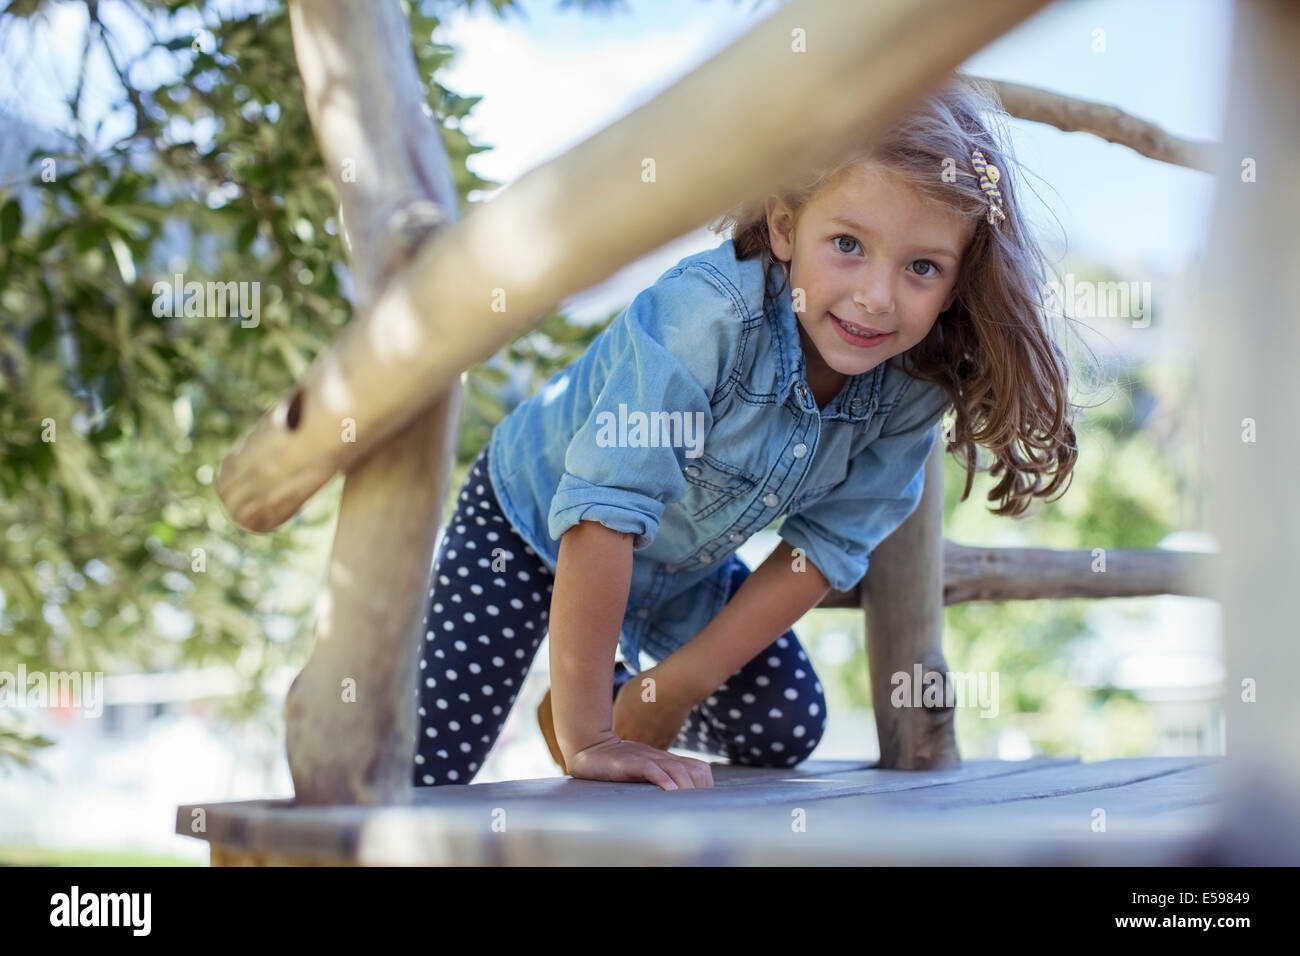 Girl climbing in treehouse outdoors - Stock Image